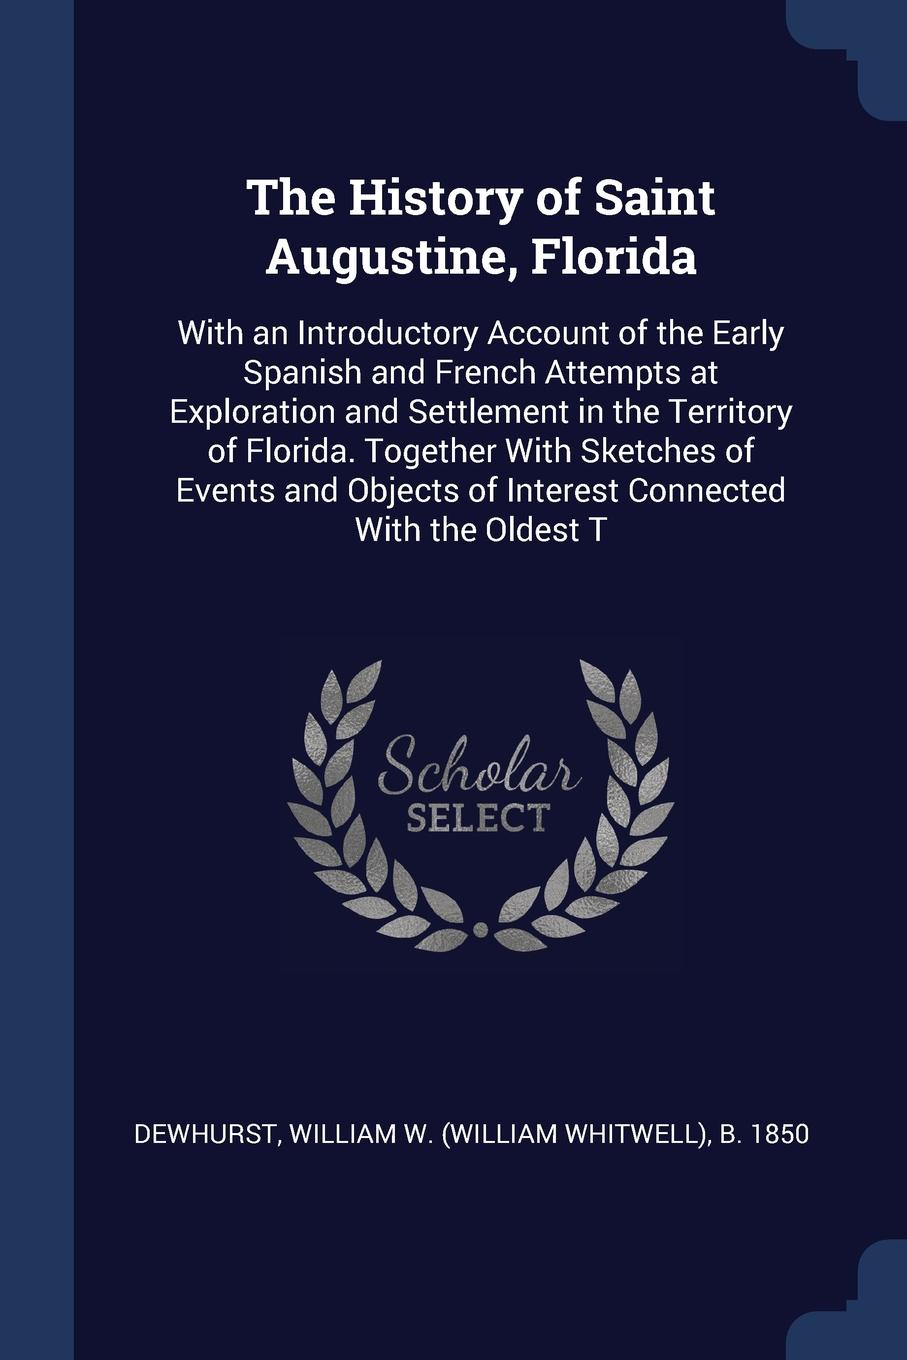 The History of Saint Augustine, Florida. With an Introductory Account of the Early Spanish and French Attempts at Exploration and Settlement in the Territory of Florida. Together With Sketches of Events and Objects of Interest Connected With the O...